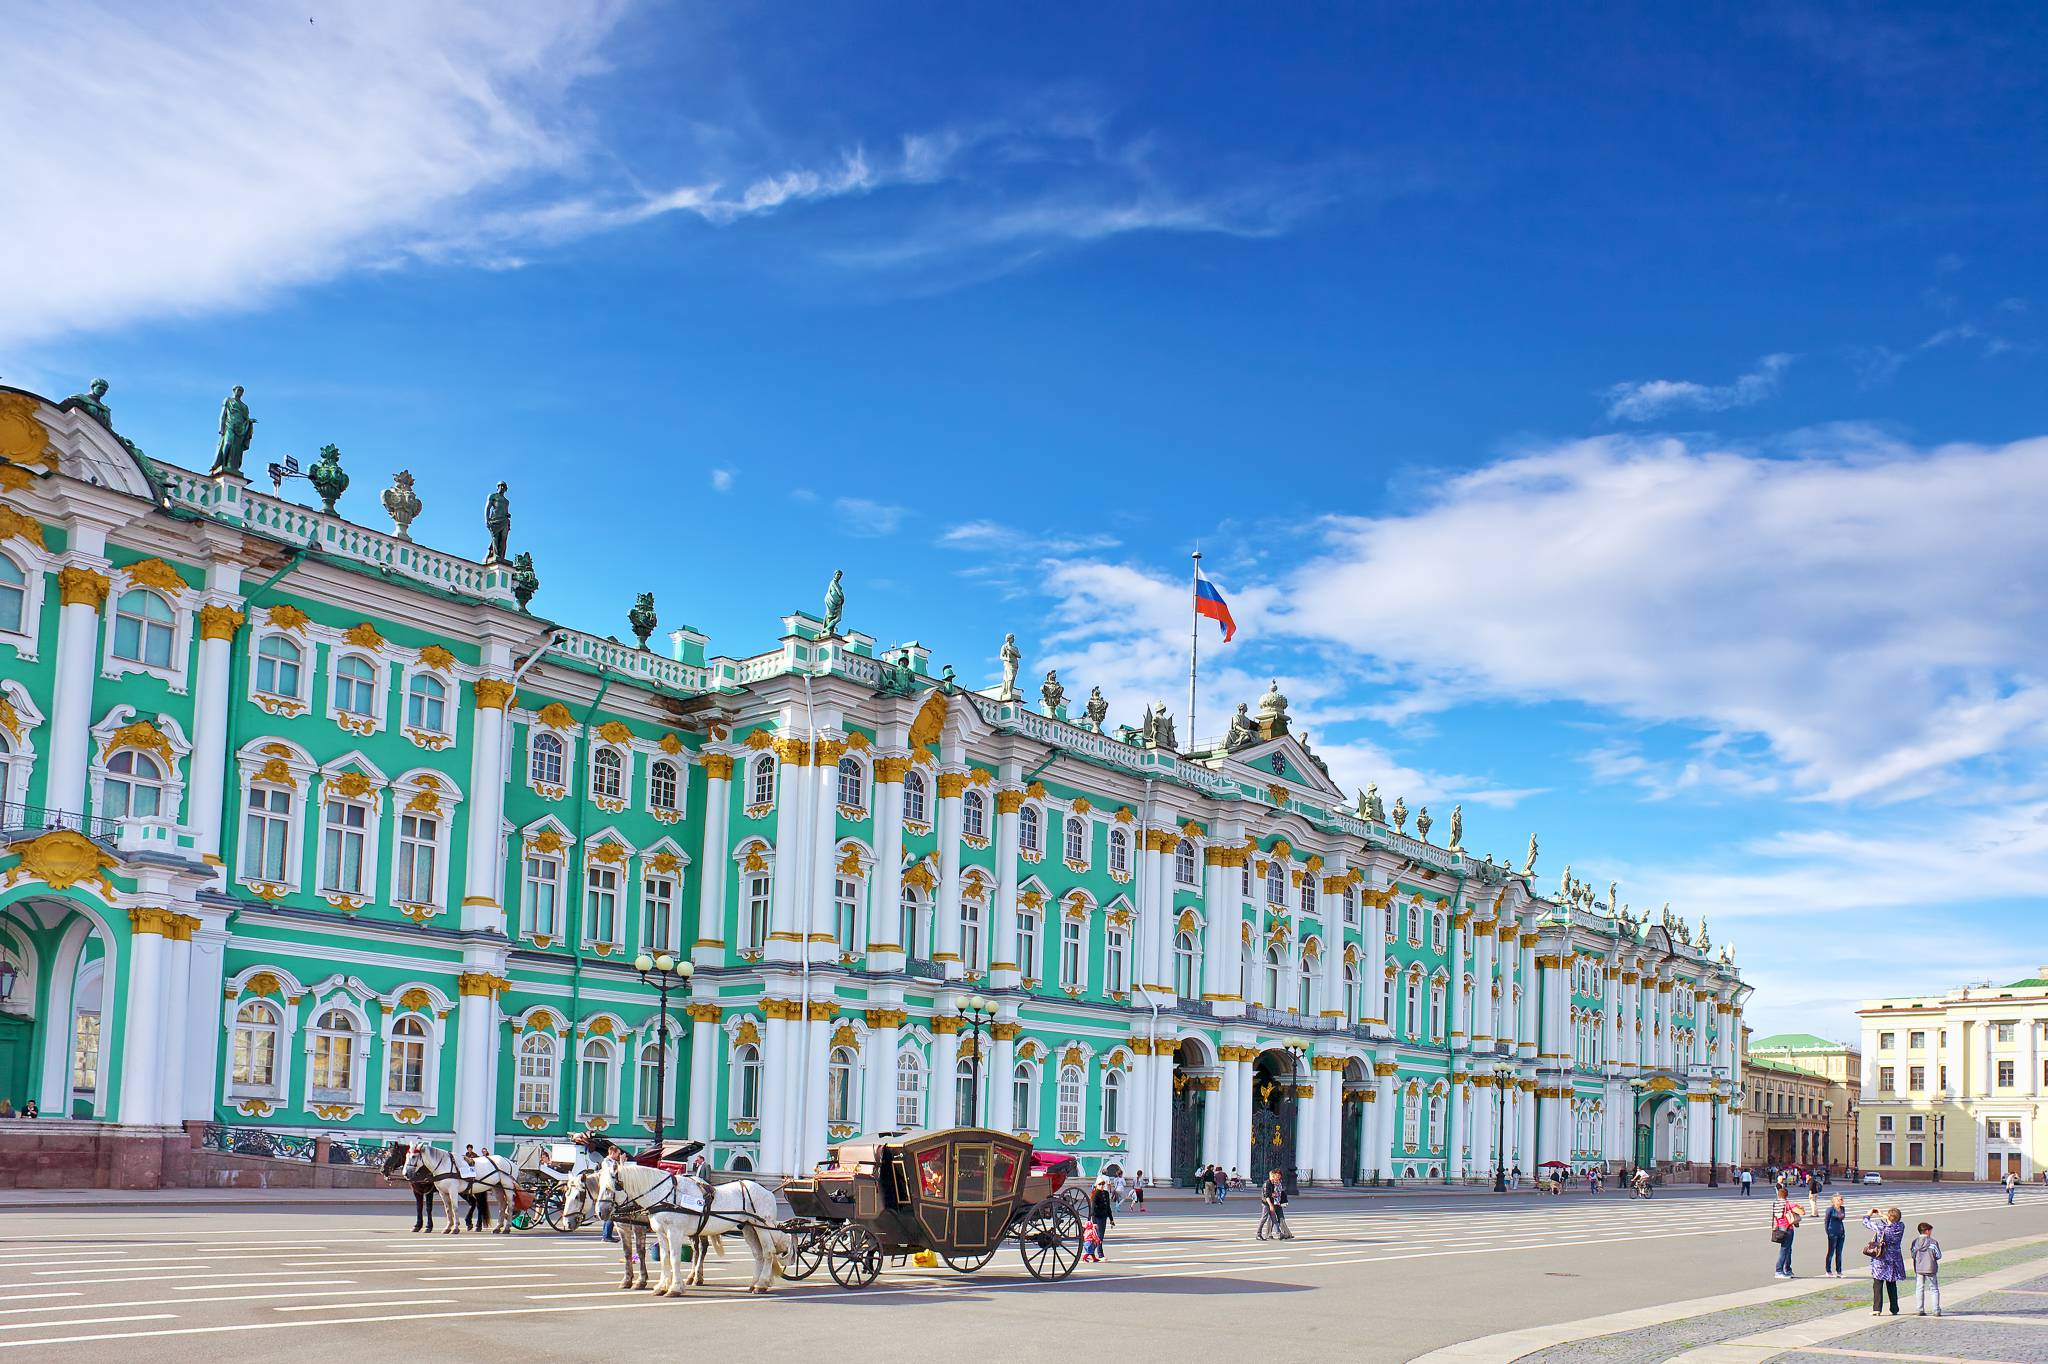 Visit Hermitage Museum with eTips Guide